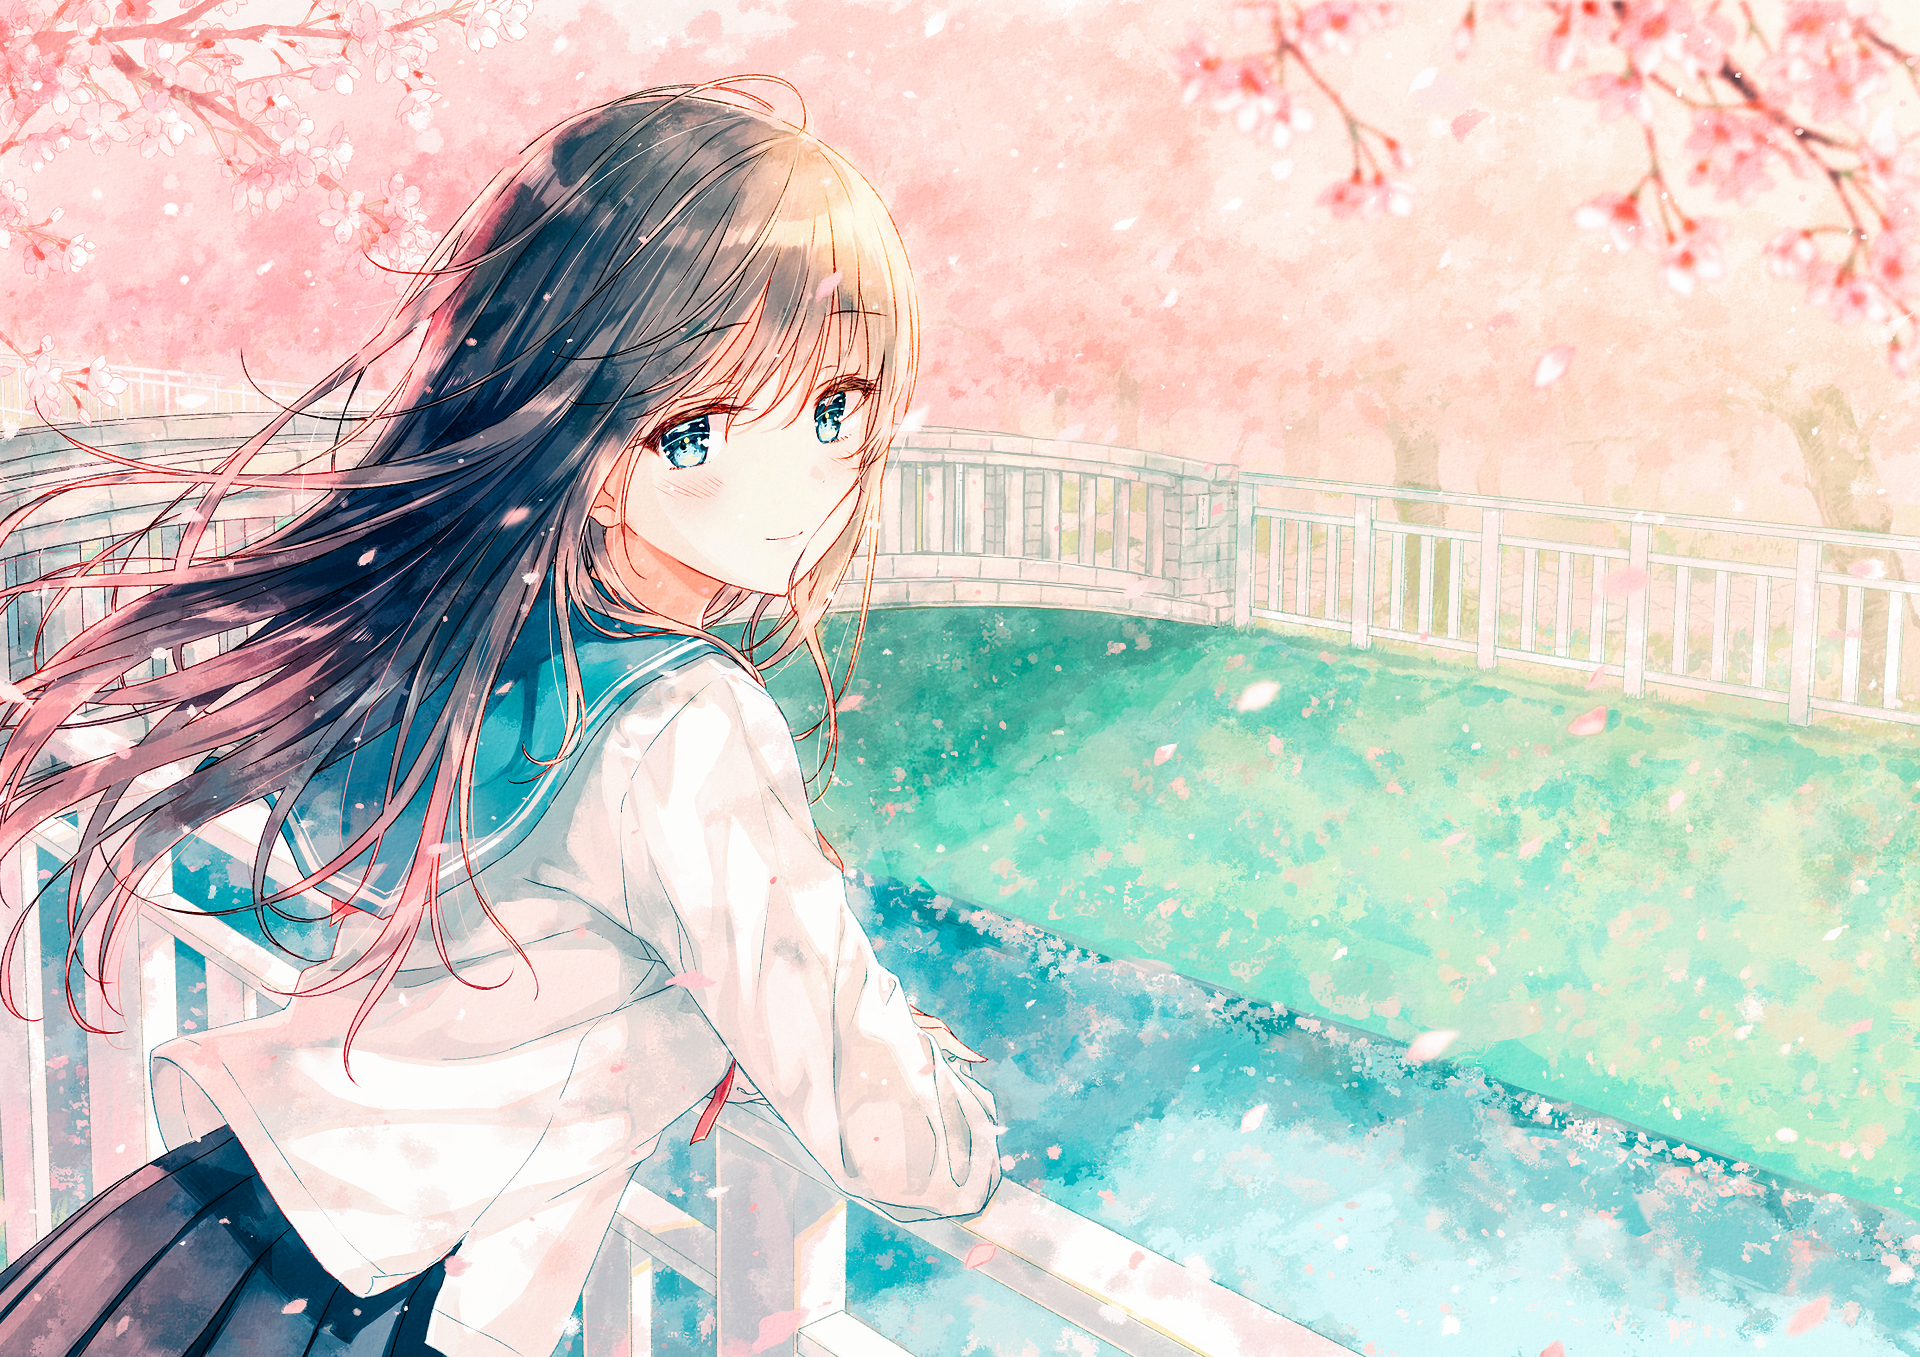 Anime - Original  Canal Smile Brown Hair Blue Eyes Blush School Uniform Spring Petal Blossom Girl Long Hair Anime Wallpaper